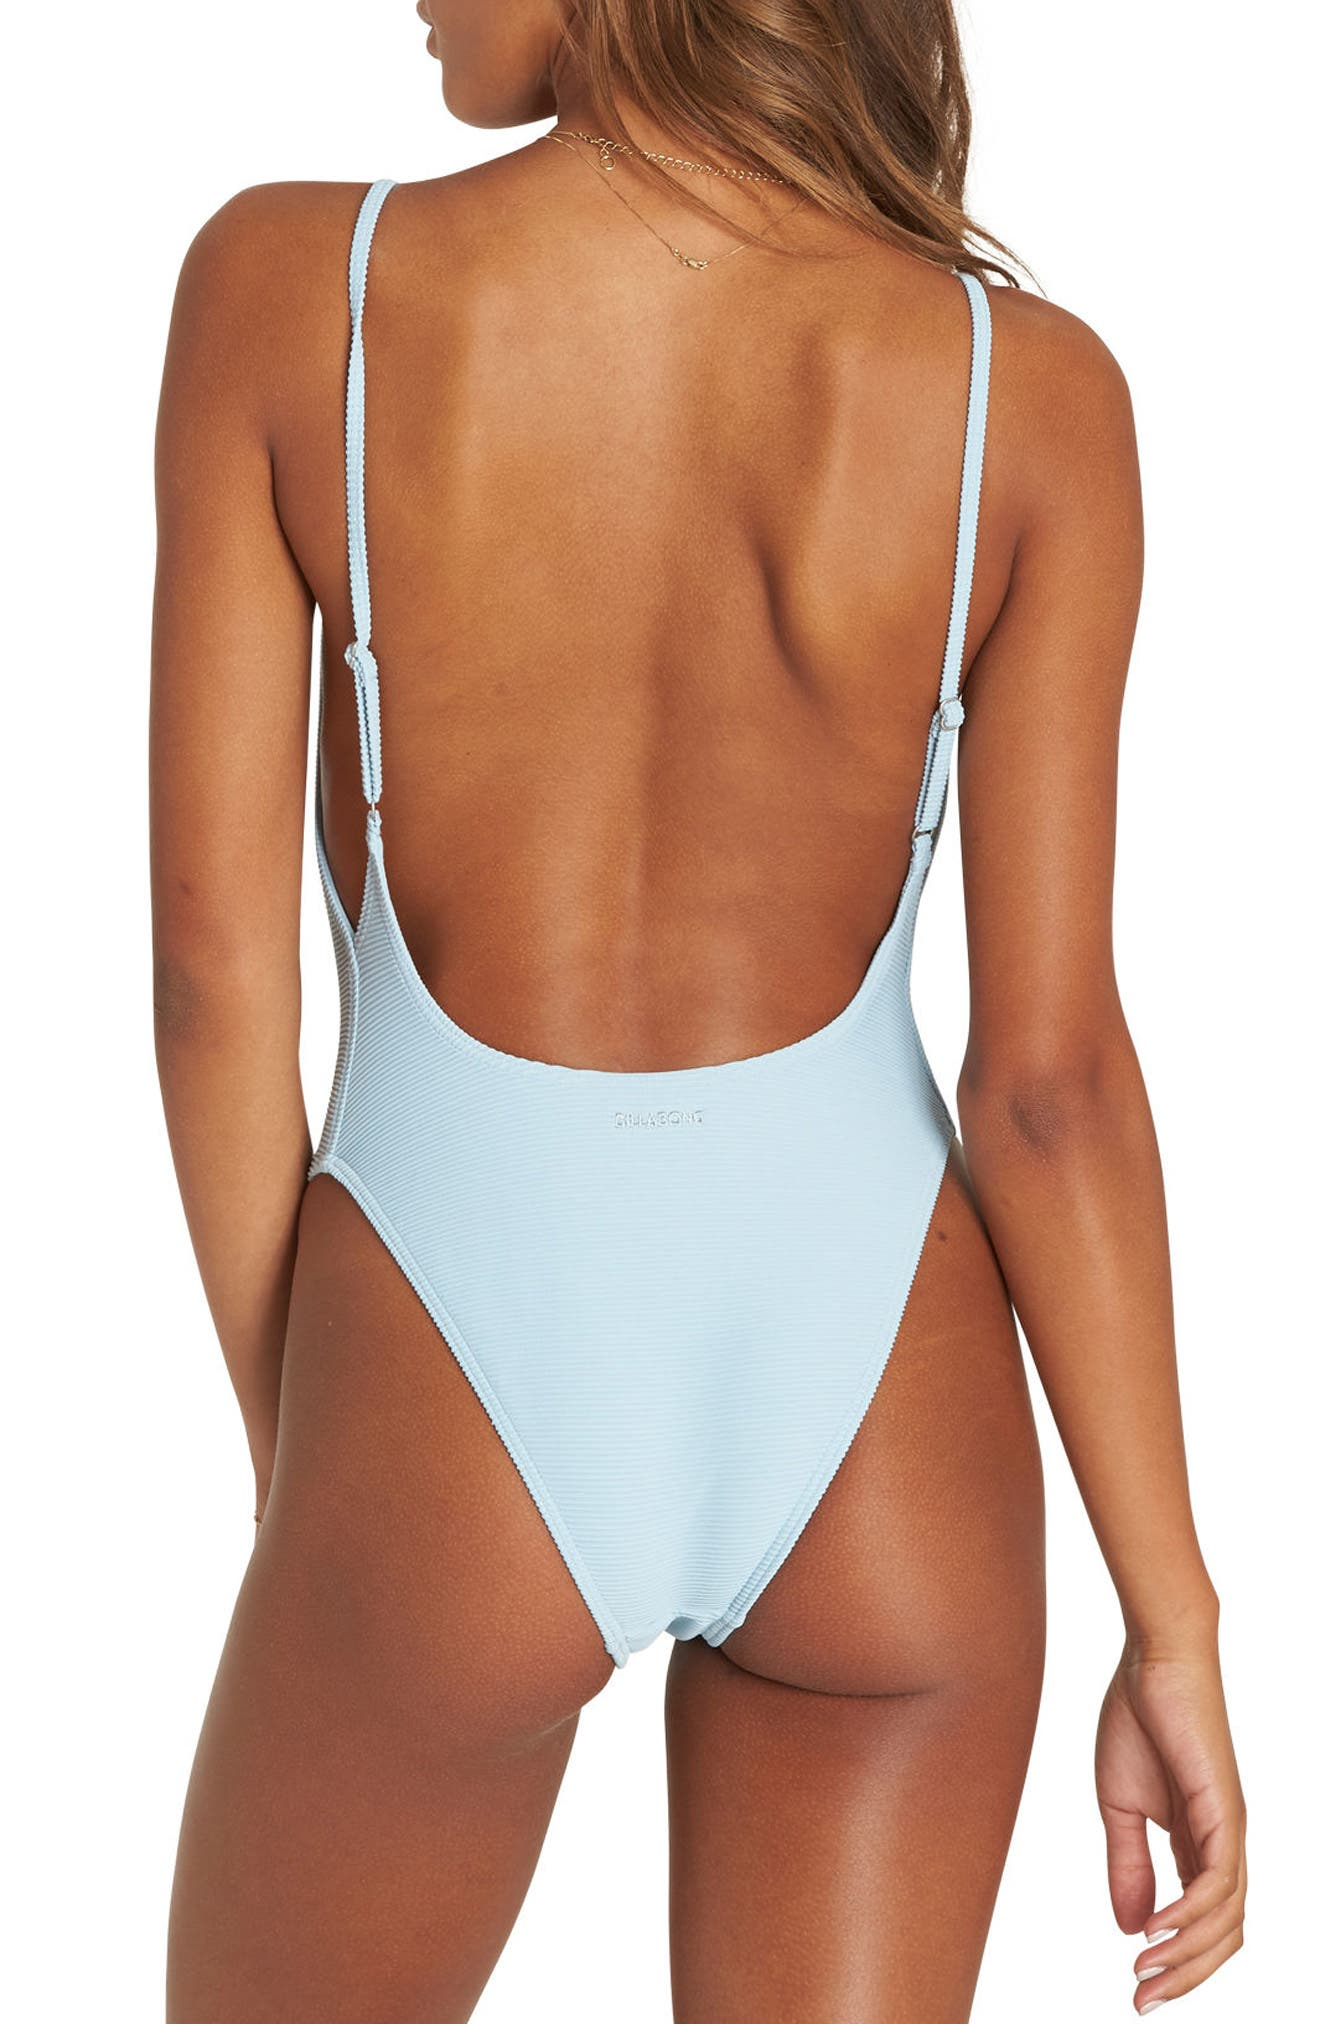 Tanlines One-Piece Swimsuit,                             Alternate thumbnail 2, color,                             410